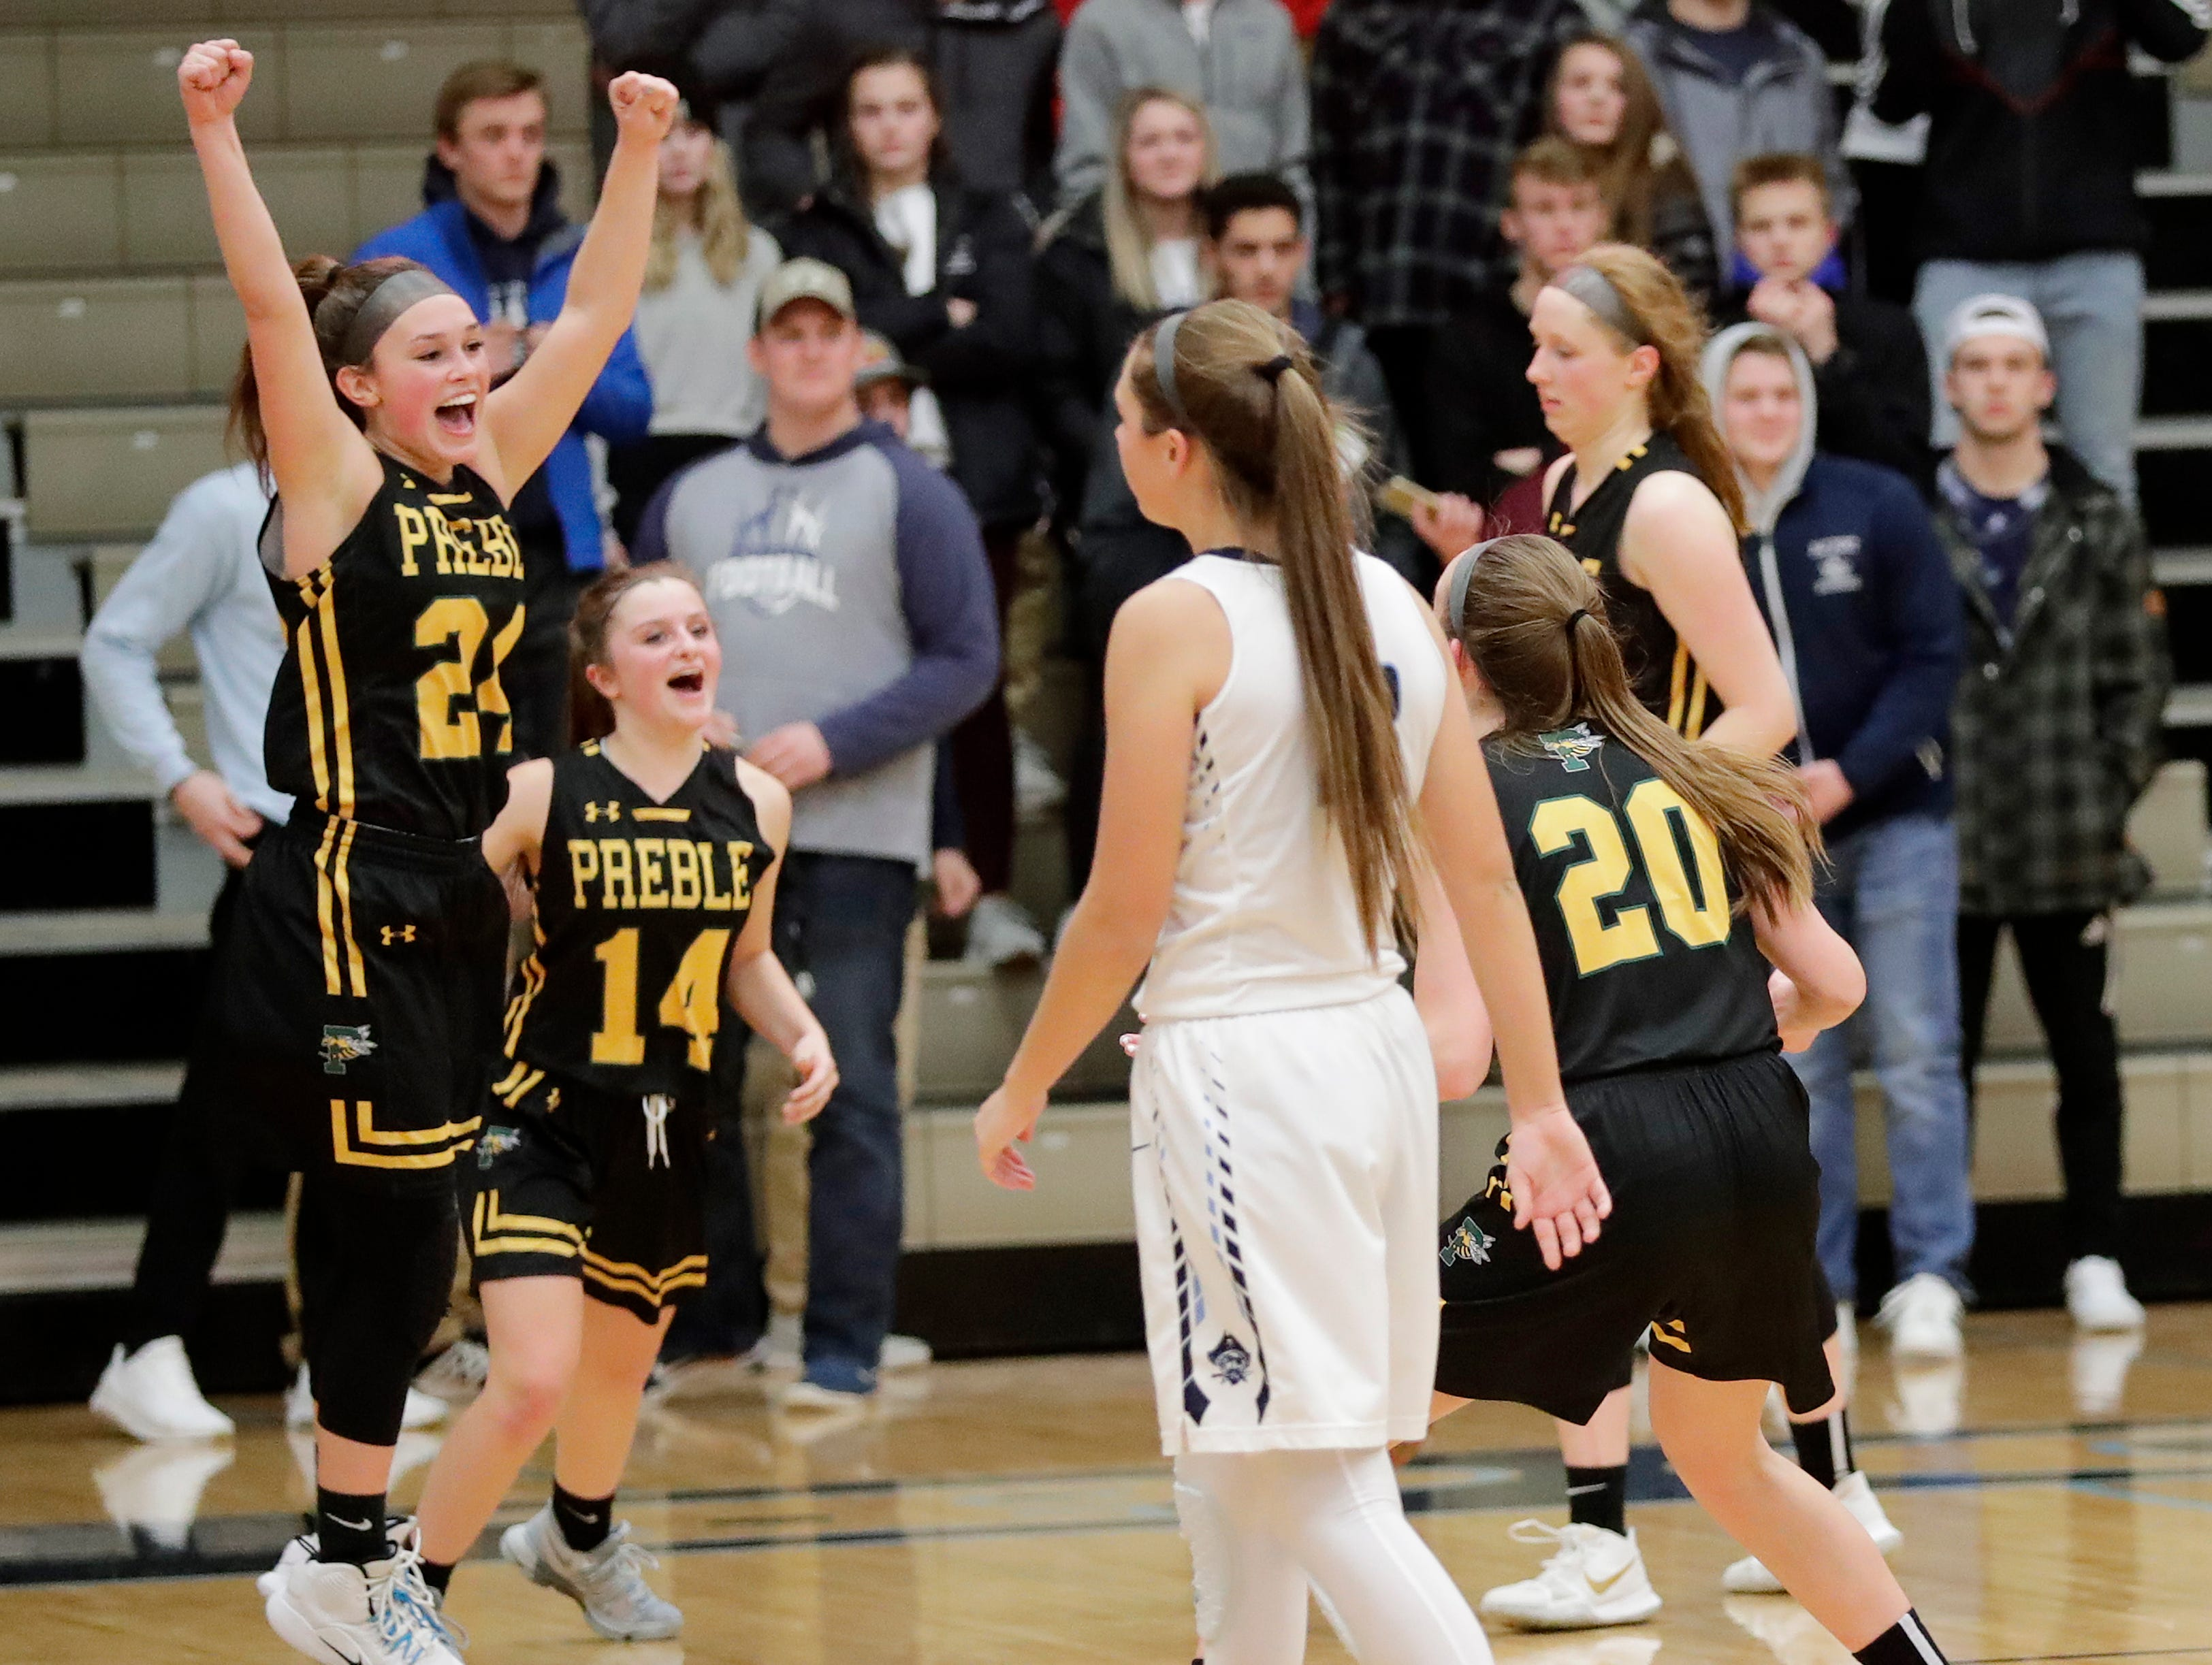 Green Bay Preble's Ella Bialkowski (24) celebrates at the buzzer against Bay Port in an FRCC girls basketball game at Bay Port high school on Friday, February 8, 2019 in Suamico, Wis.